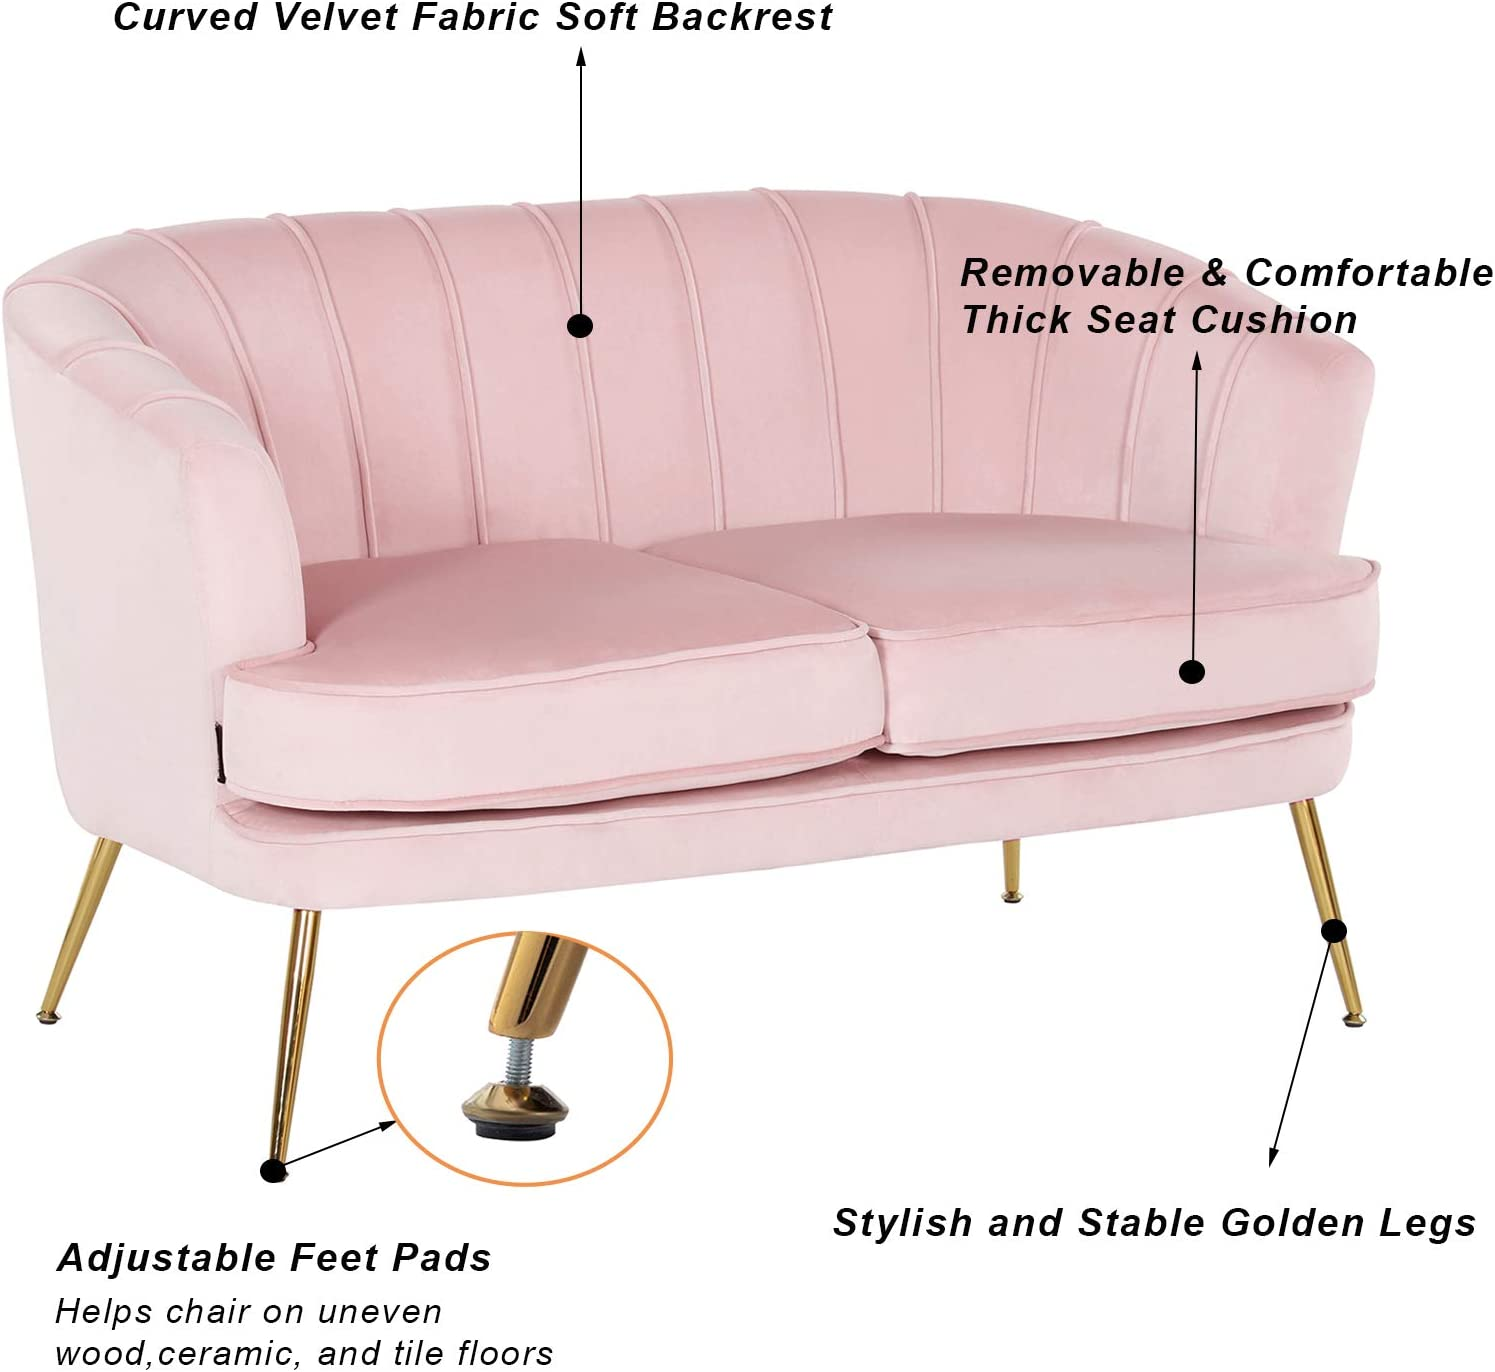 Artechworks Contemporary Velvet Loveseat Chair with Gold-Finished Metal Legs, 2-Seat Sofa for Living Room, Bedroom, Home Office, Pink